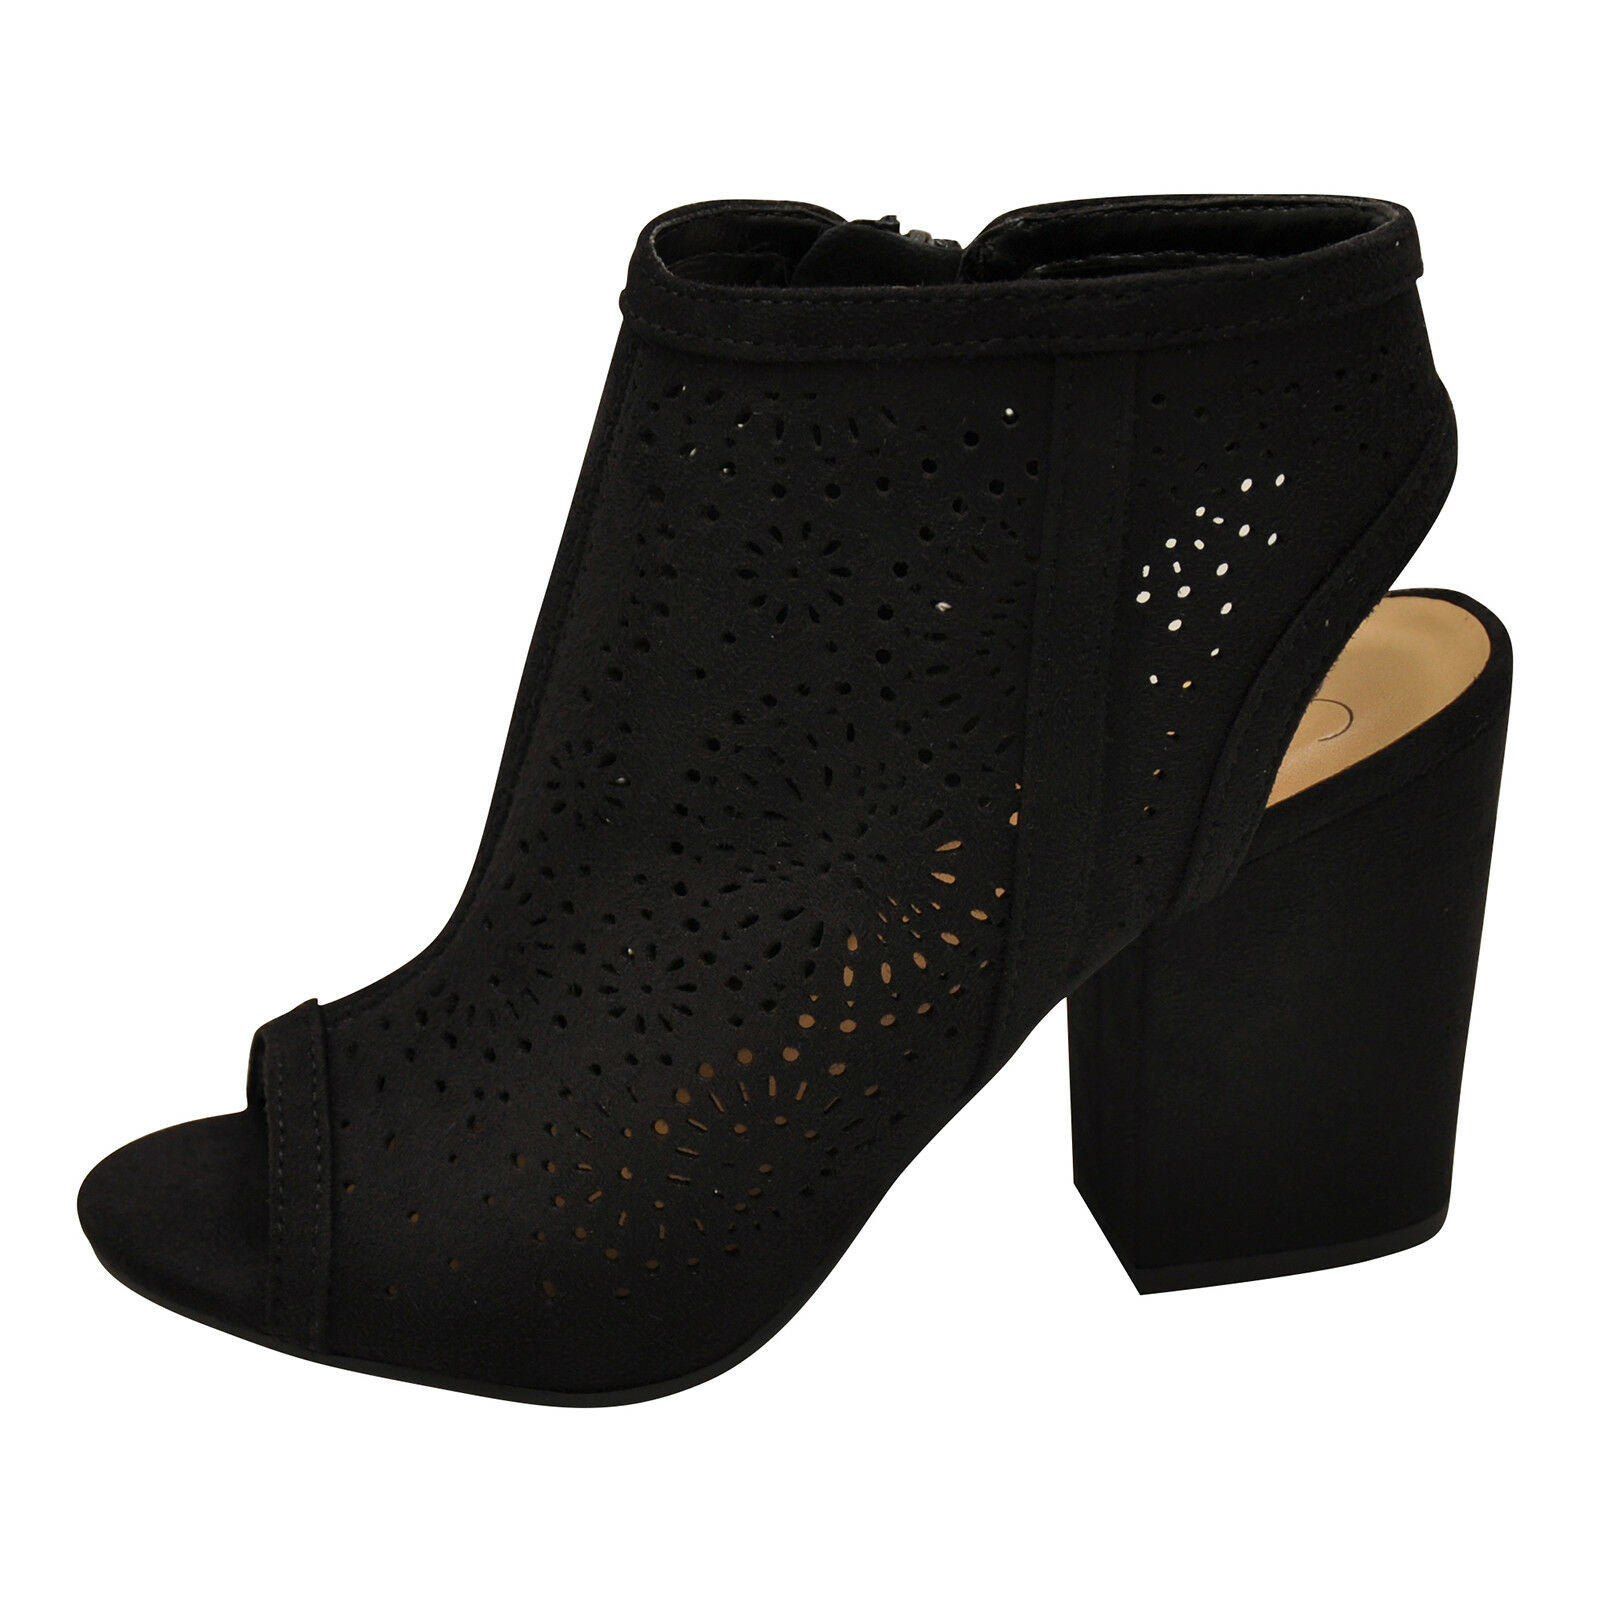 Delicious PARKING-S Black Women's Perforated Chunky Heel Sandal Booties